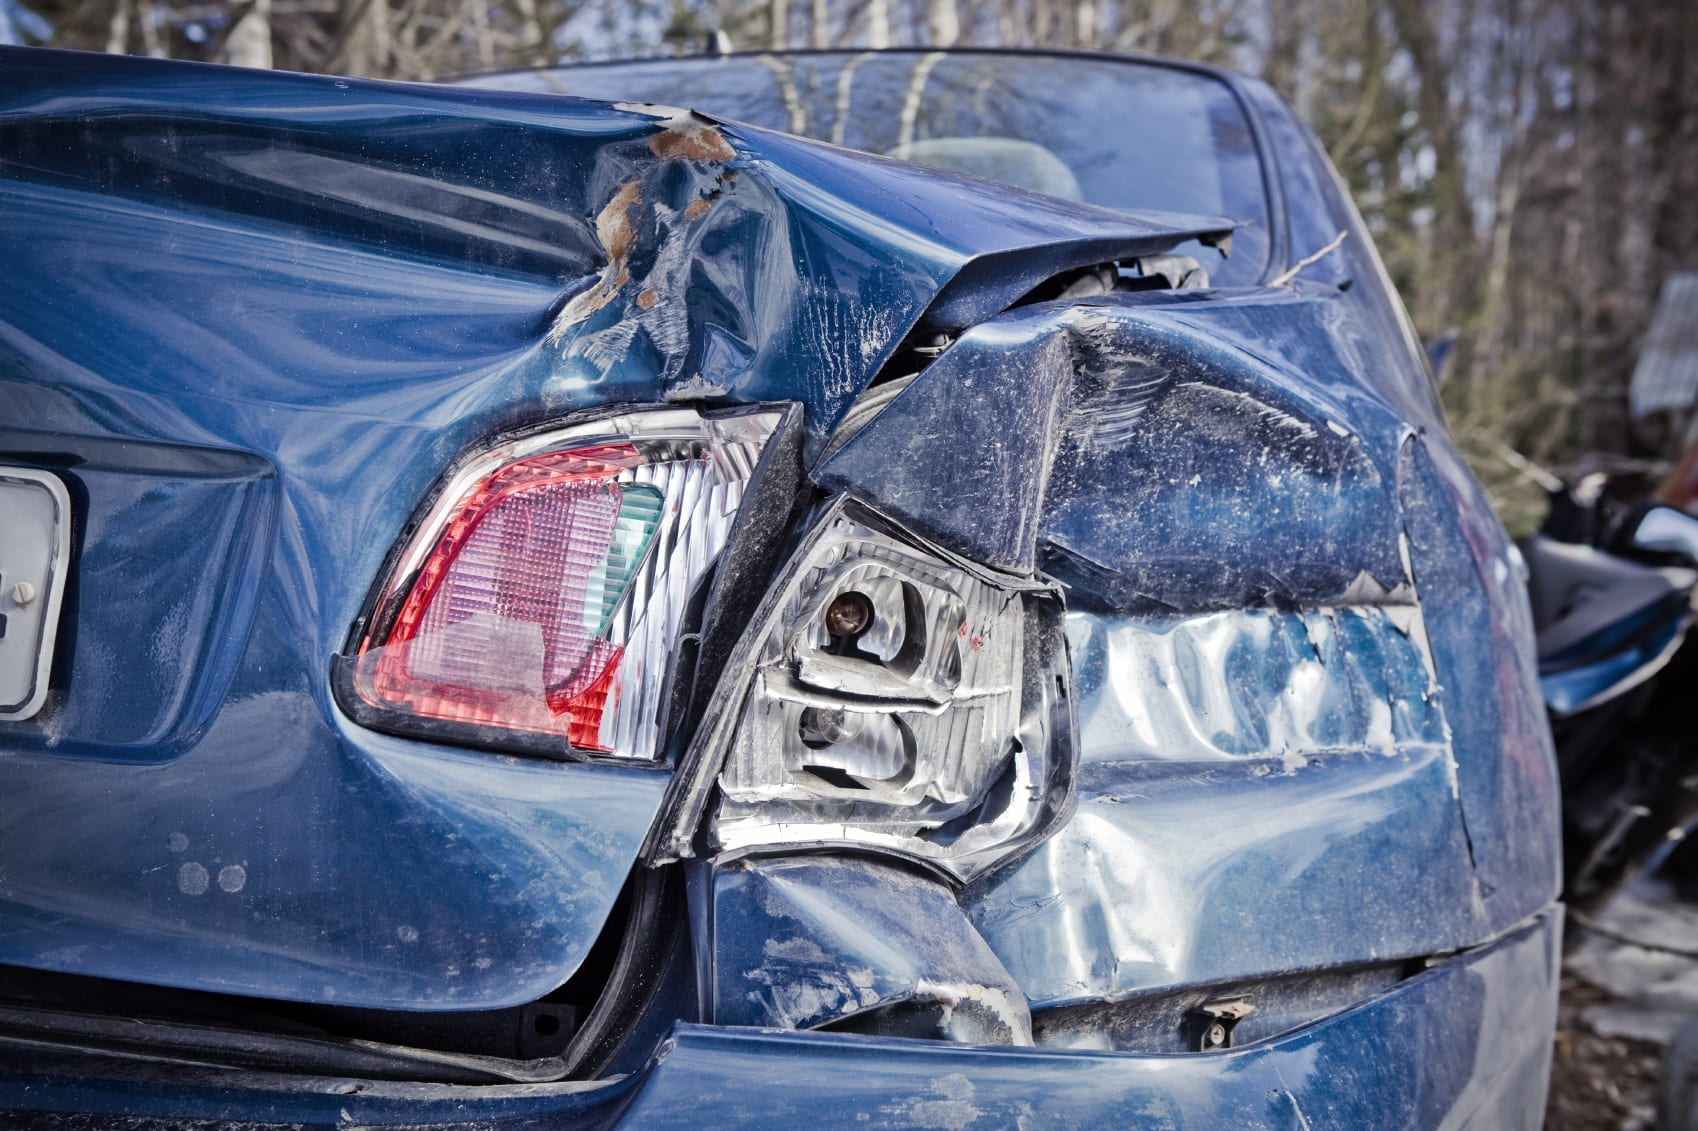 Blue Car In Rear End Auto Accident Stock Photo